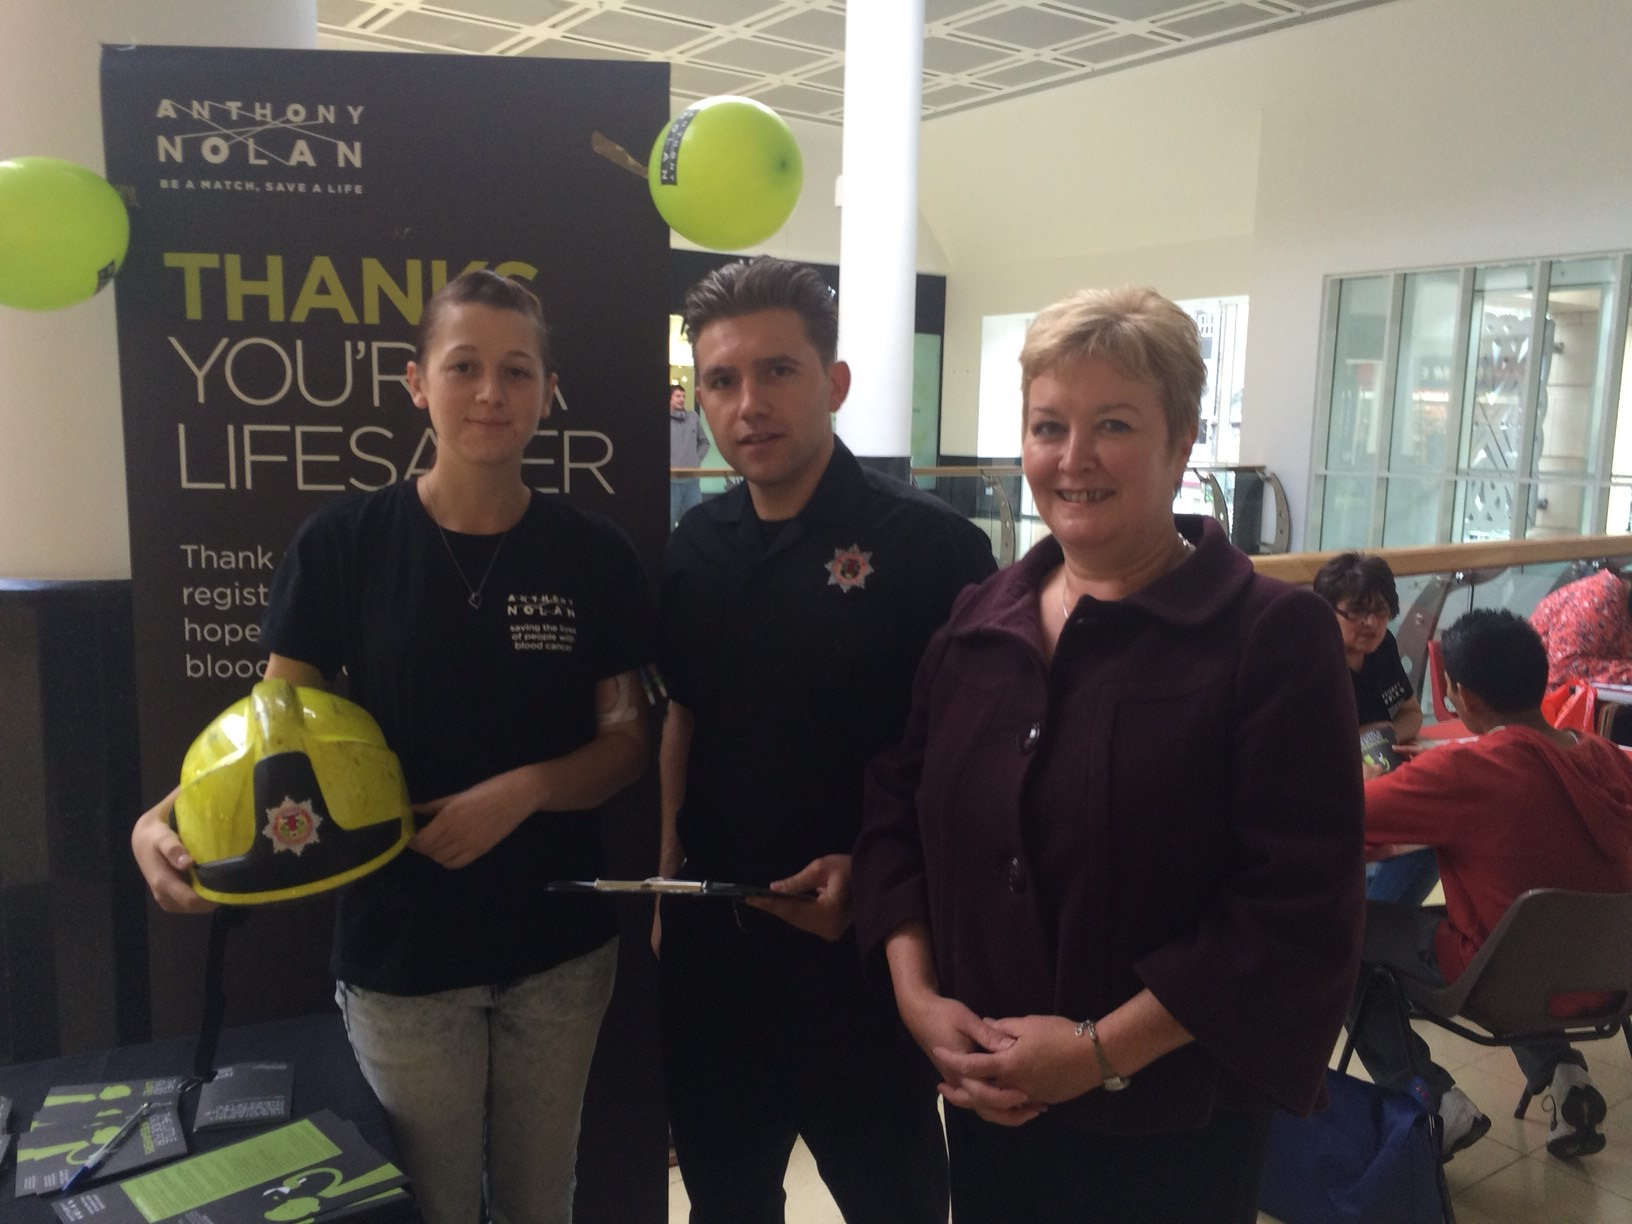 SFRS and campaigners delighted with news of Michaela's match